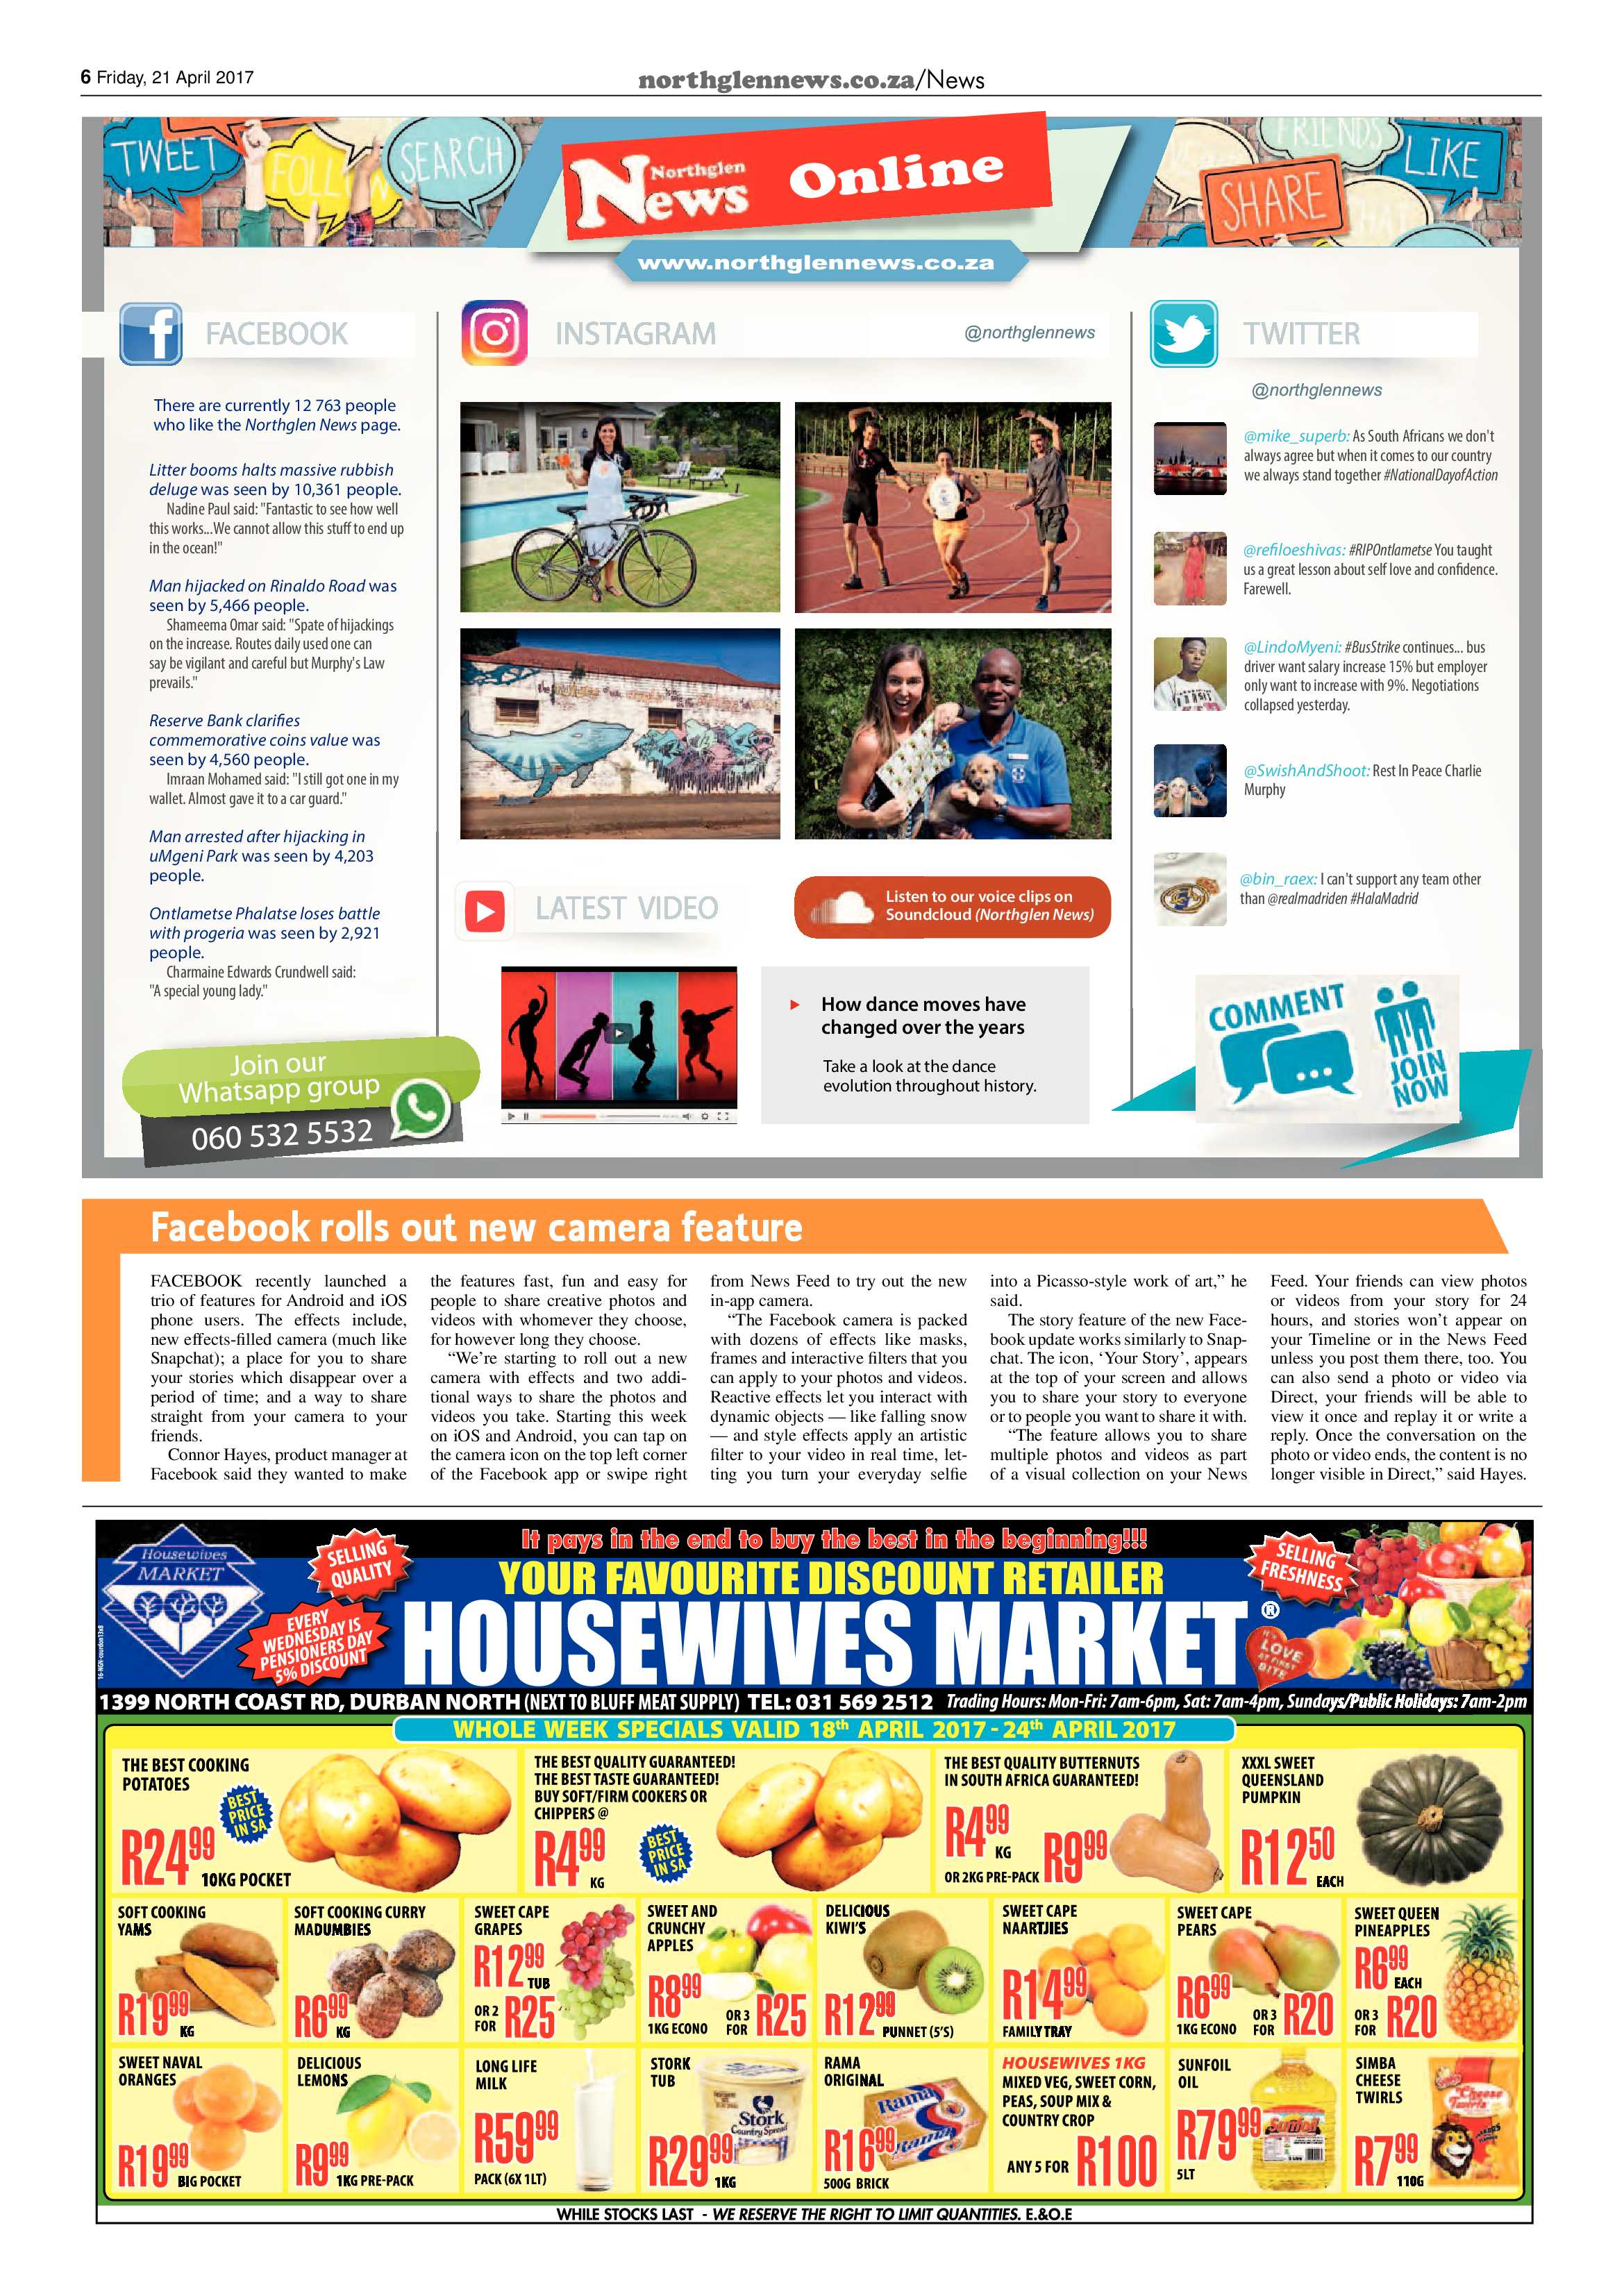 northglen-news-21-april-2017-epapers-page-6